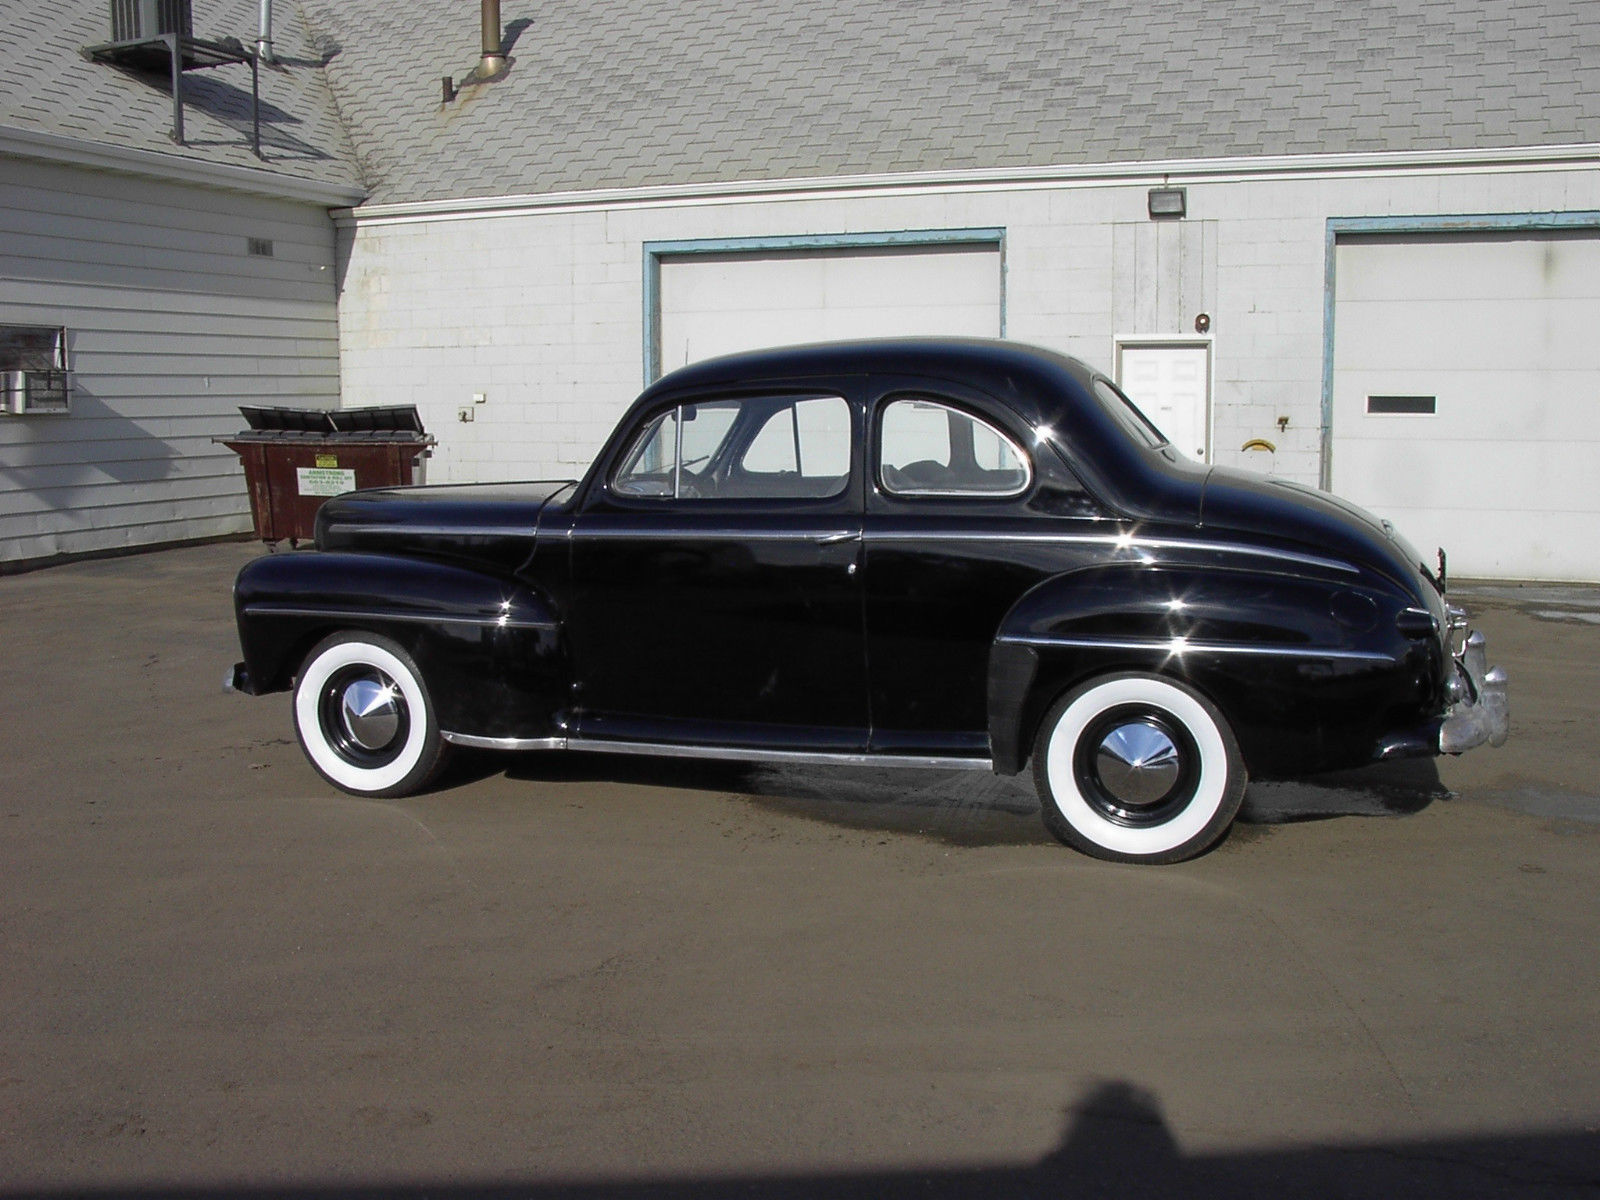 1948 48 Ford Flathead V8 3 Speed Coupe Hot Rod Black New